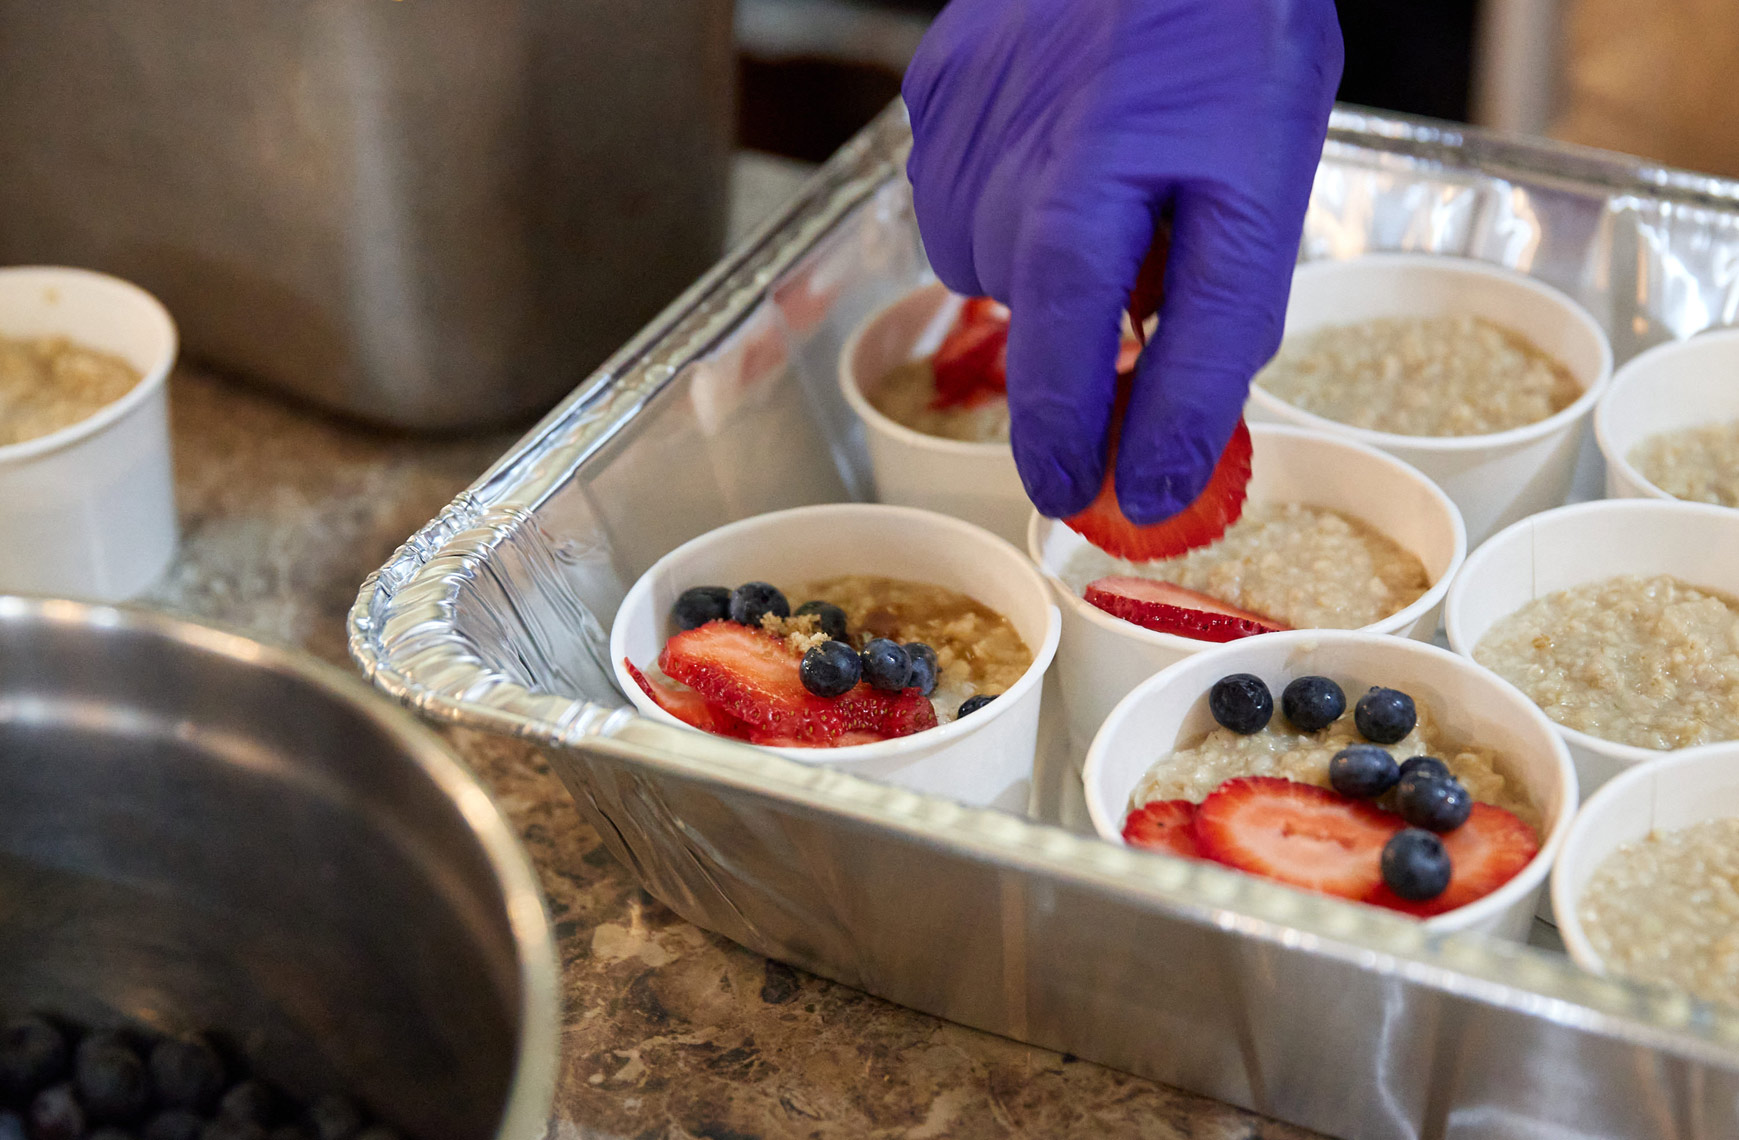 gloved_hand_puts_berries_on_oatmeal_3FG7961